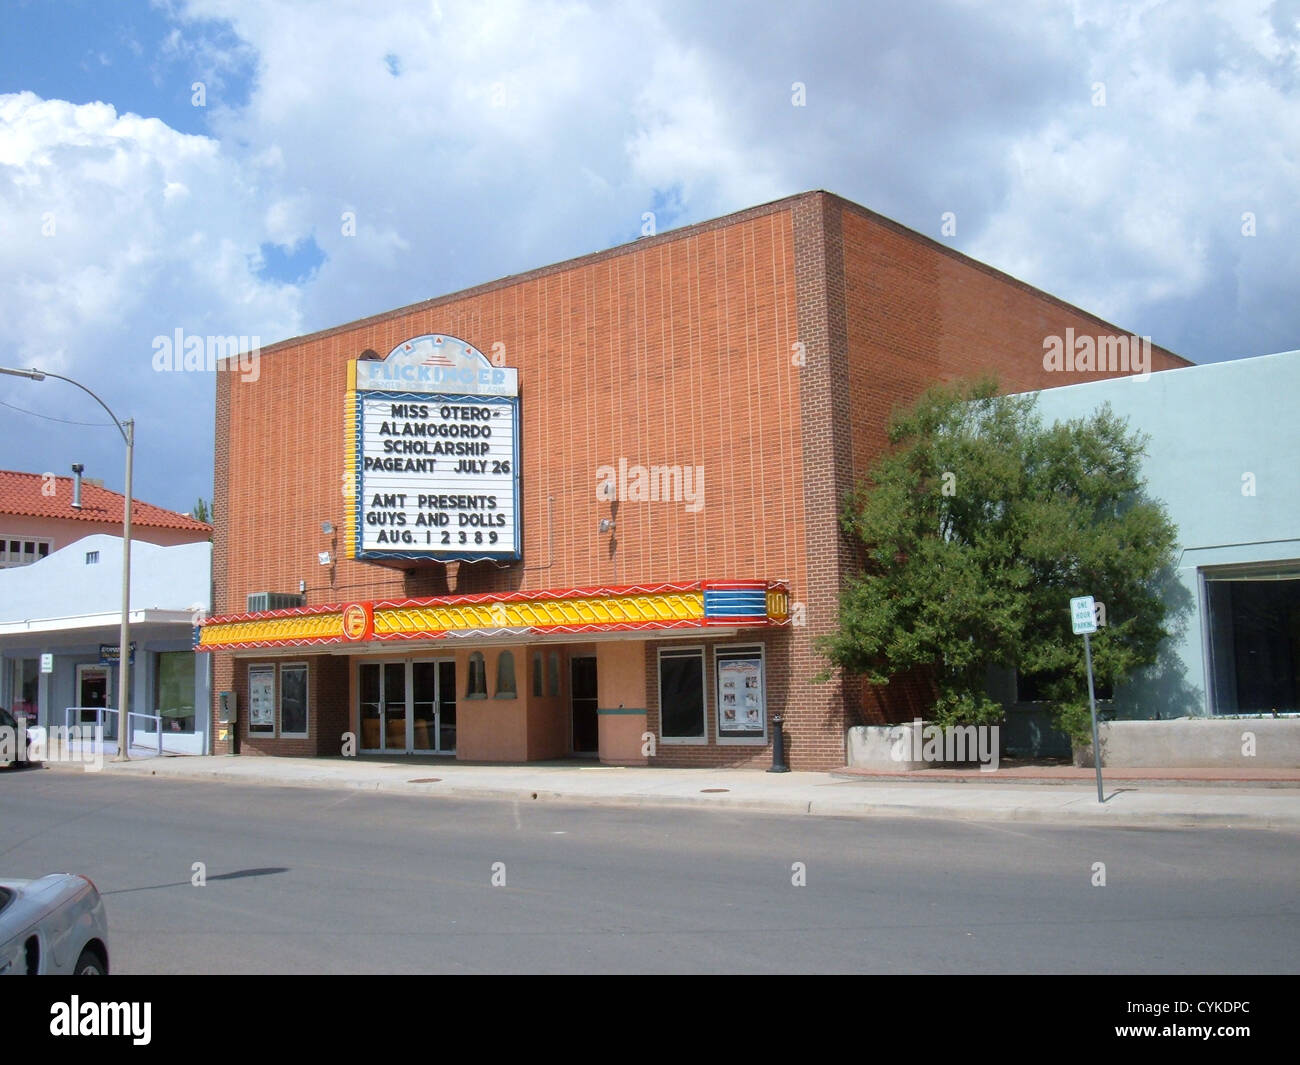 Flickinger Center for Performing Arts in Alamogordo, New Mexico, located at 1110 New York Avenue. - Stock Image